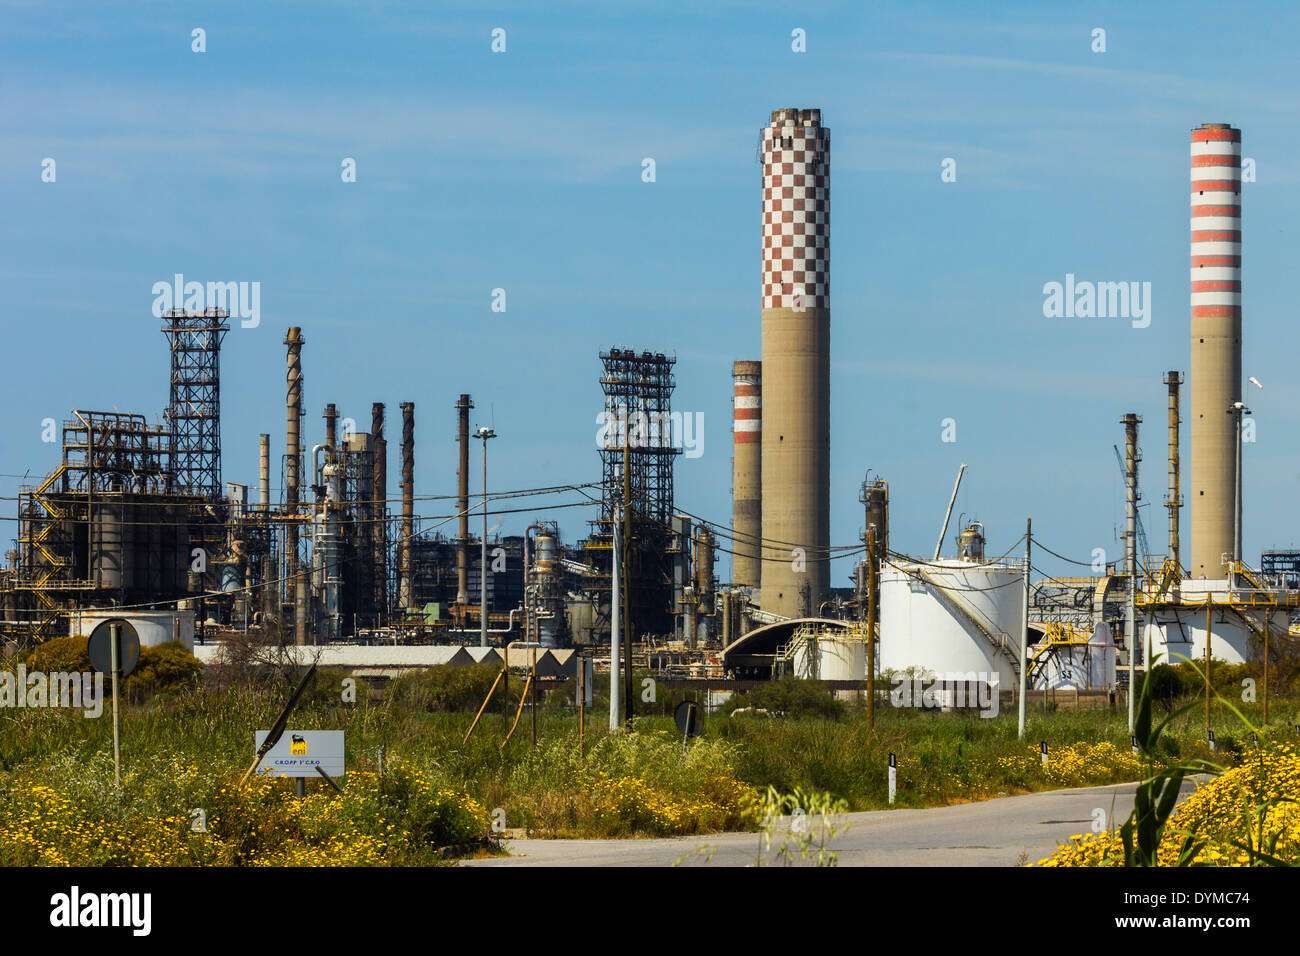 South coast Gela petrochemical plant refining crude oil from the Eni offshore field; Gela, Caltanissetta Province, Sicily, Italy - Stock Image